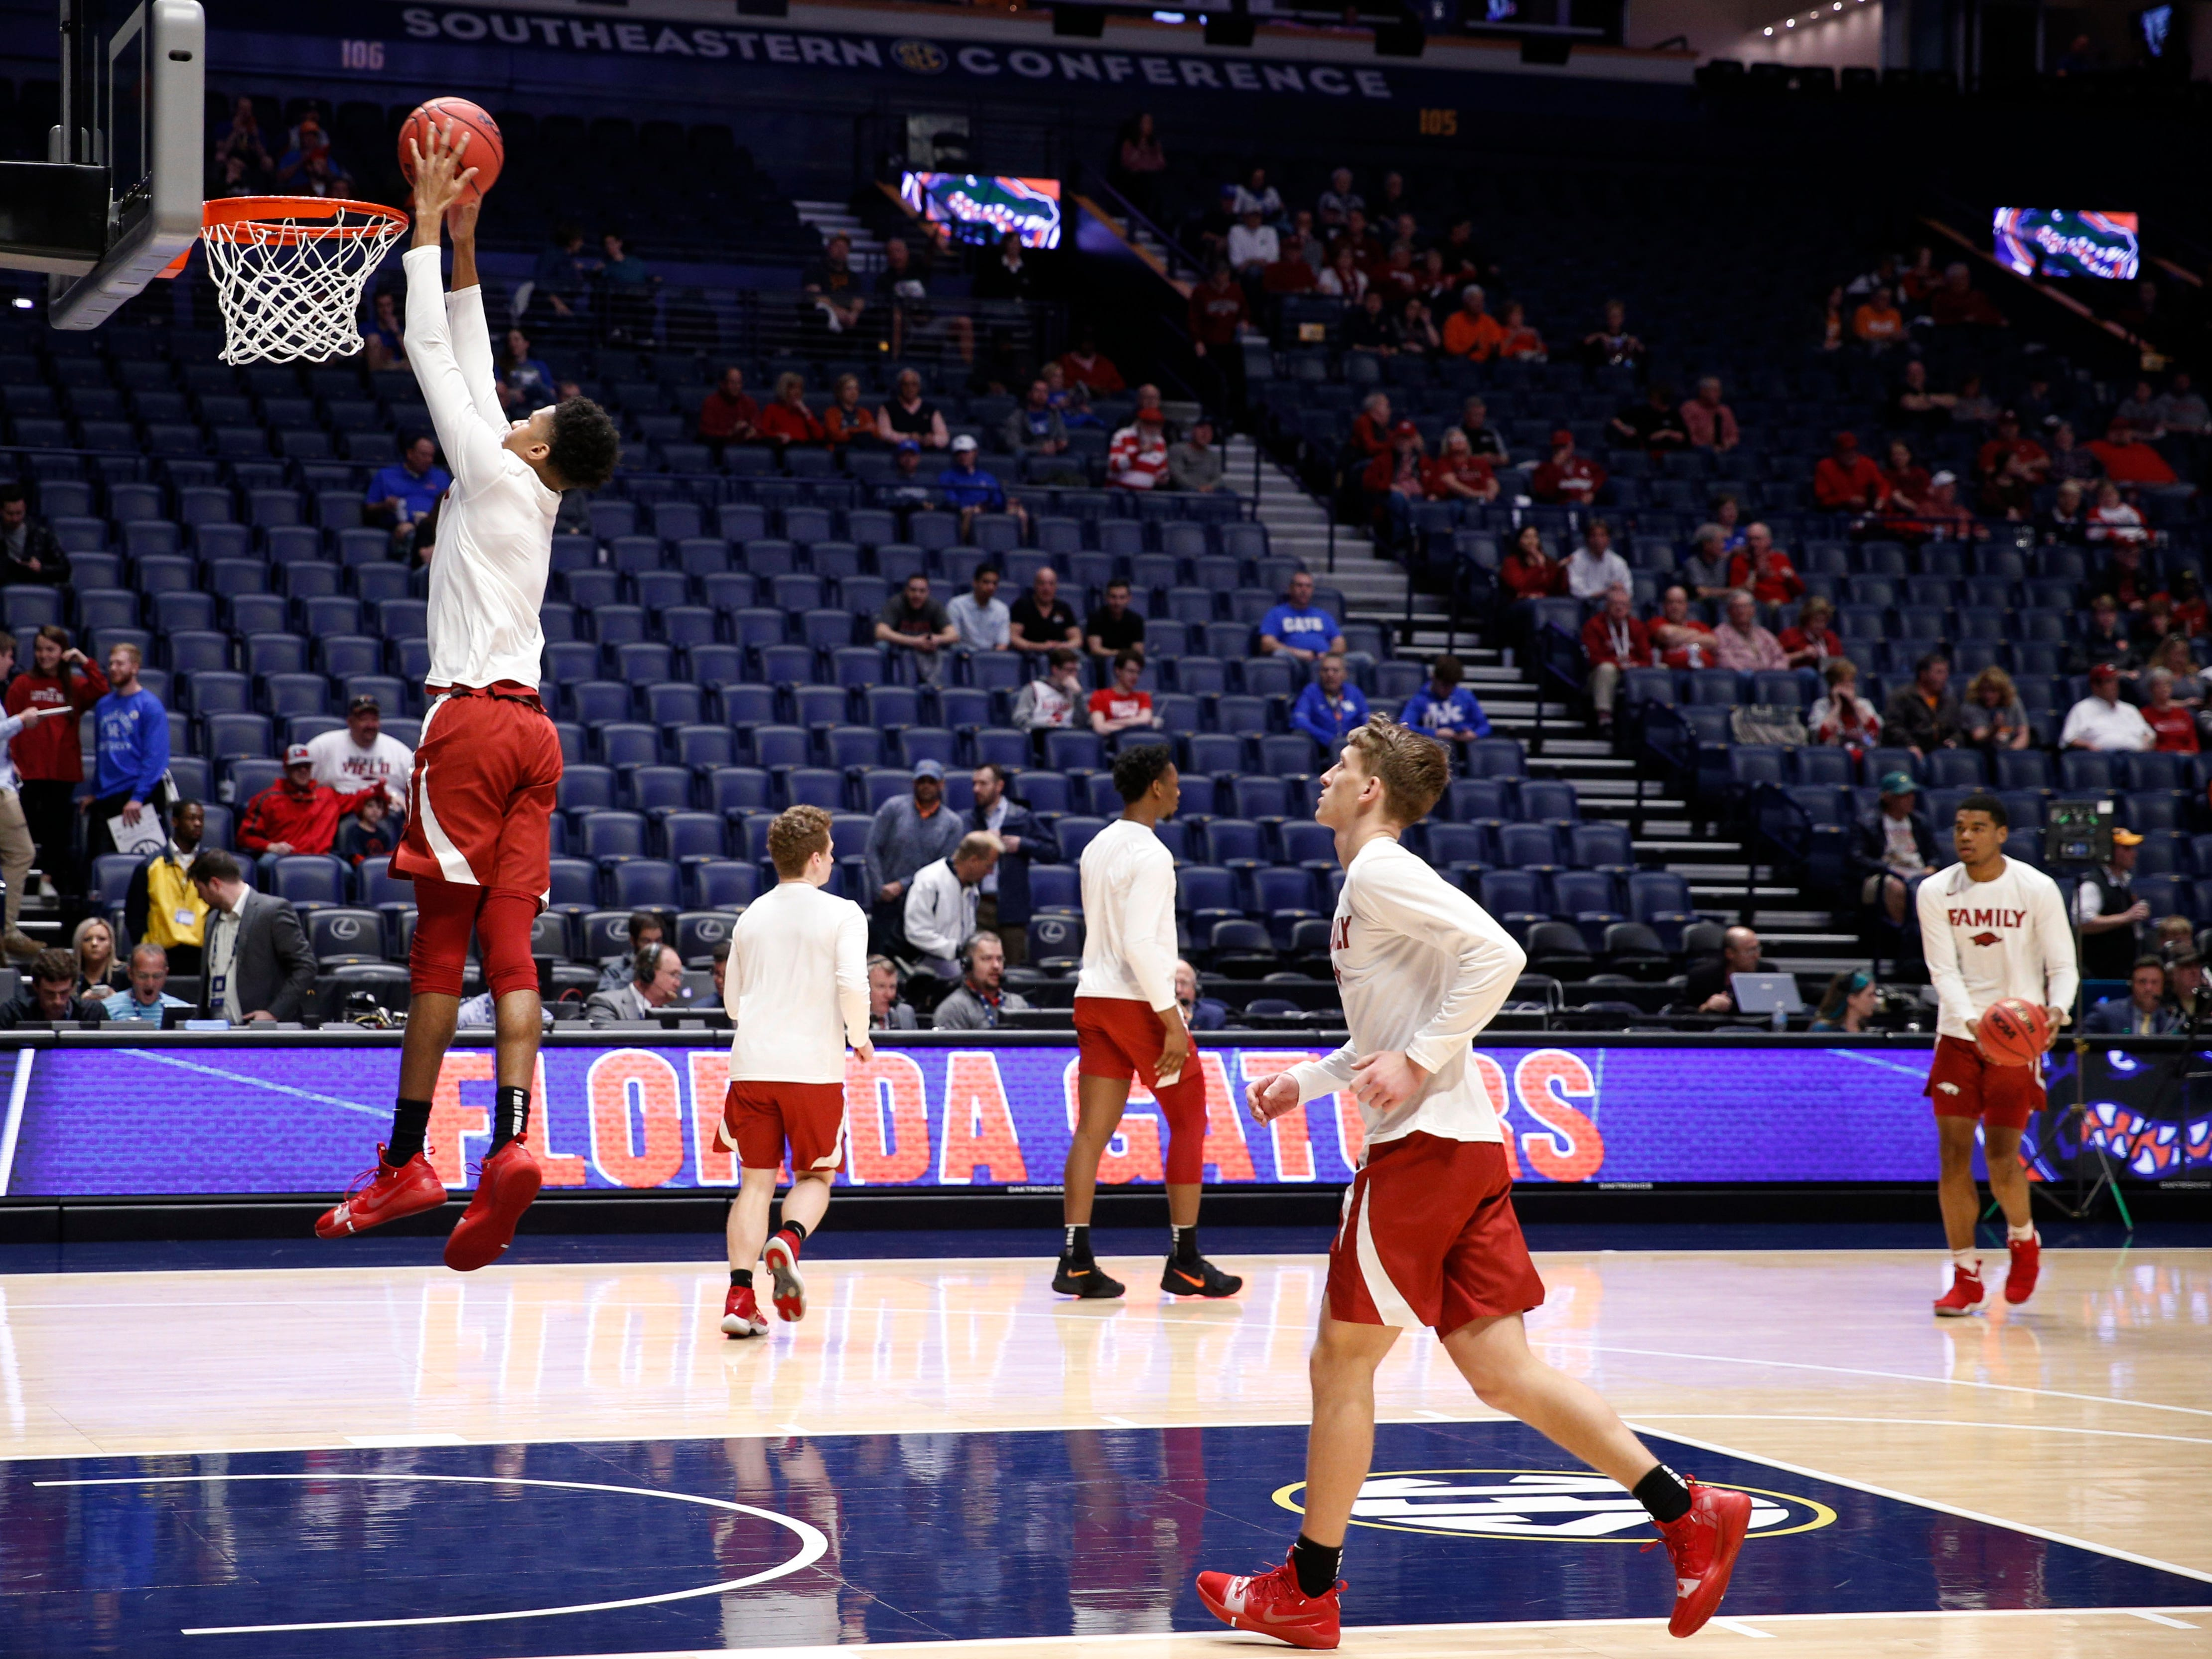 Arkansas warms up before the SEC Men's Basketball Tournament game at Bridgestone Arena in Nashville, Tenn., Thursday, March 14, 2019.